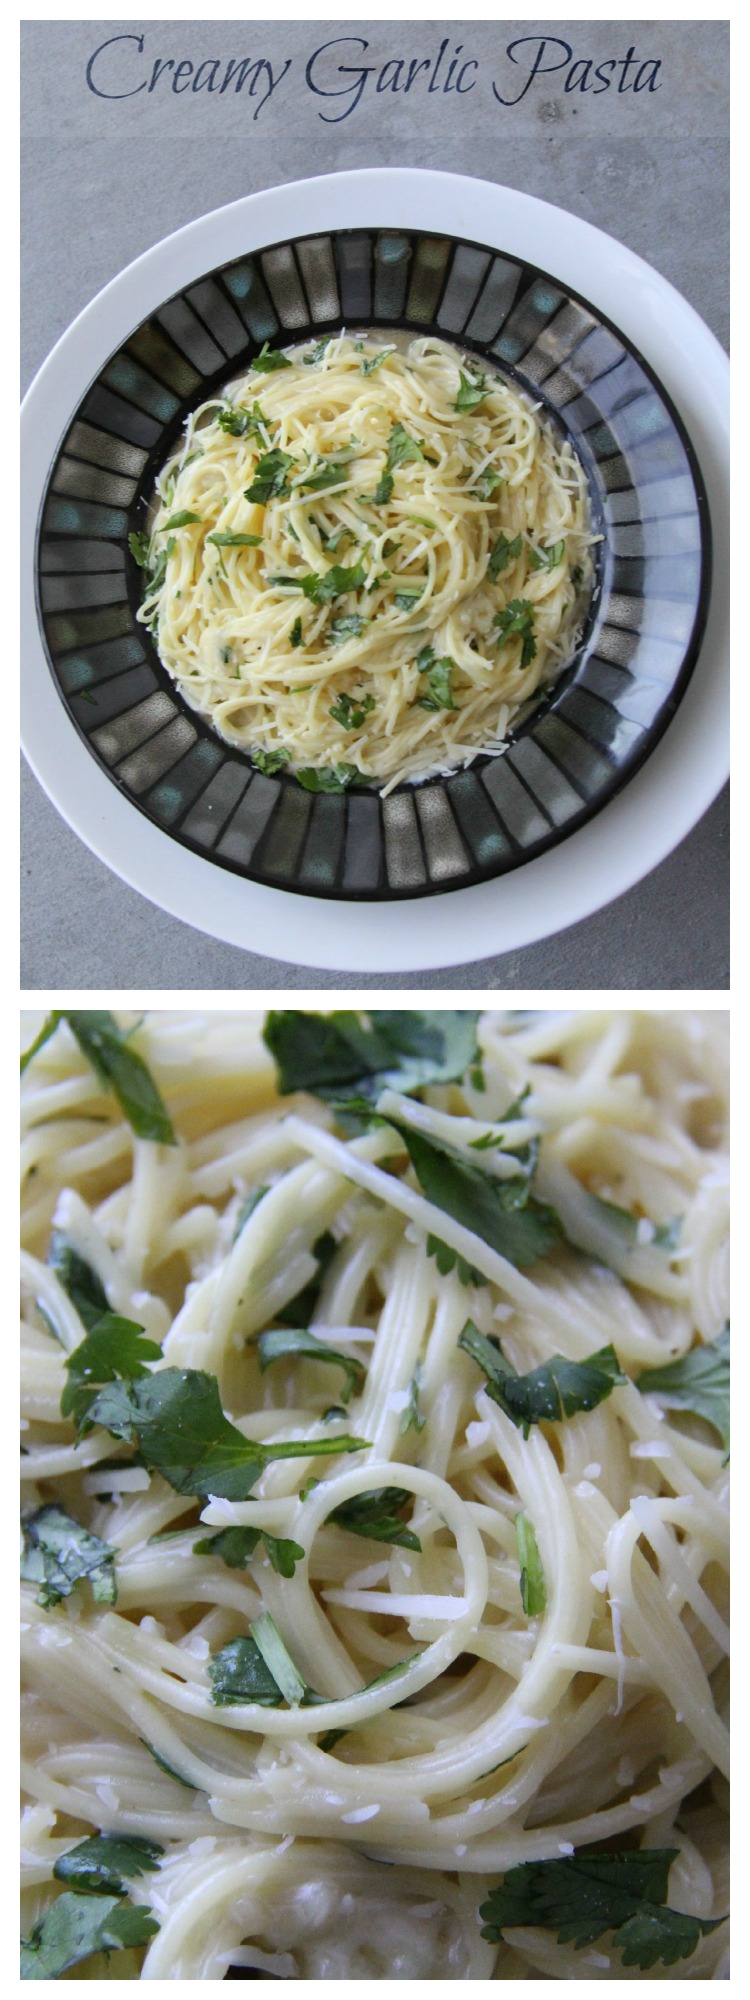 Creamy #Garlic #Pasta Collage - If you need a garlic fix then this recipe is for you! It is a fast easy meal! Tested first by MadeFromPinterest.net